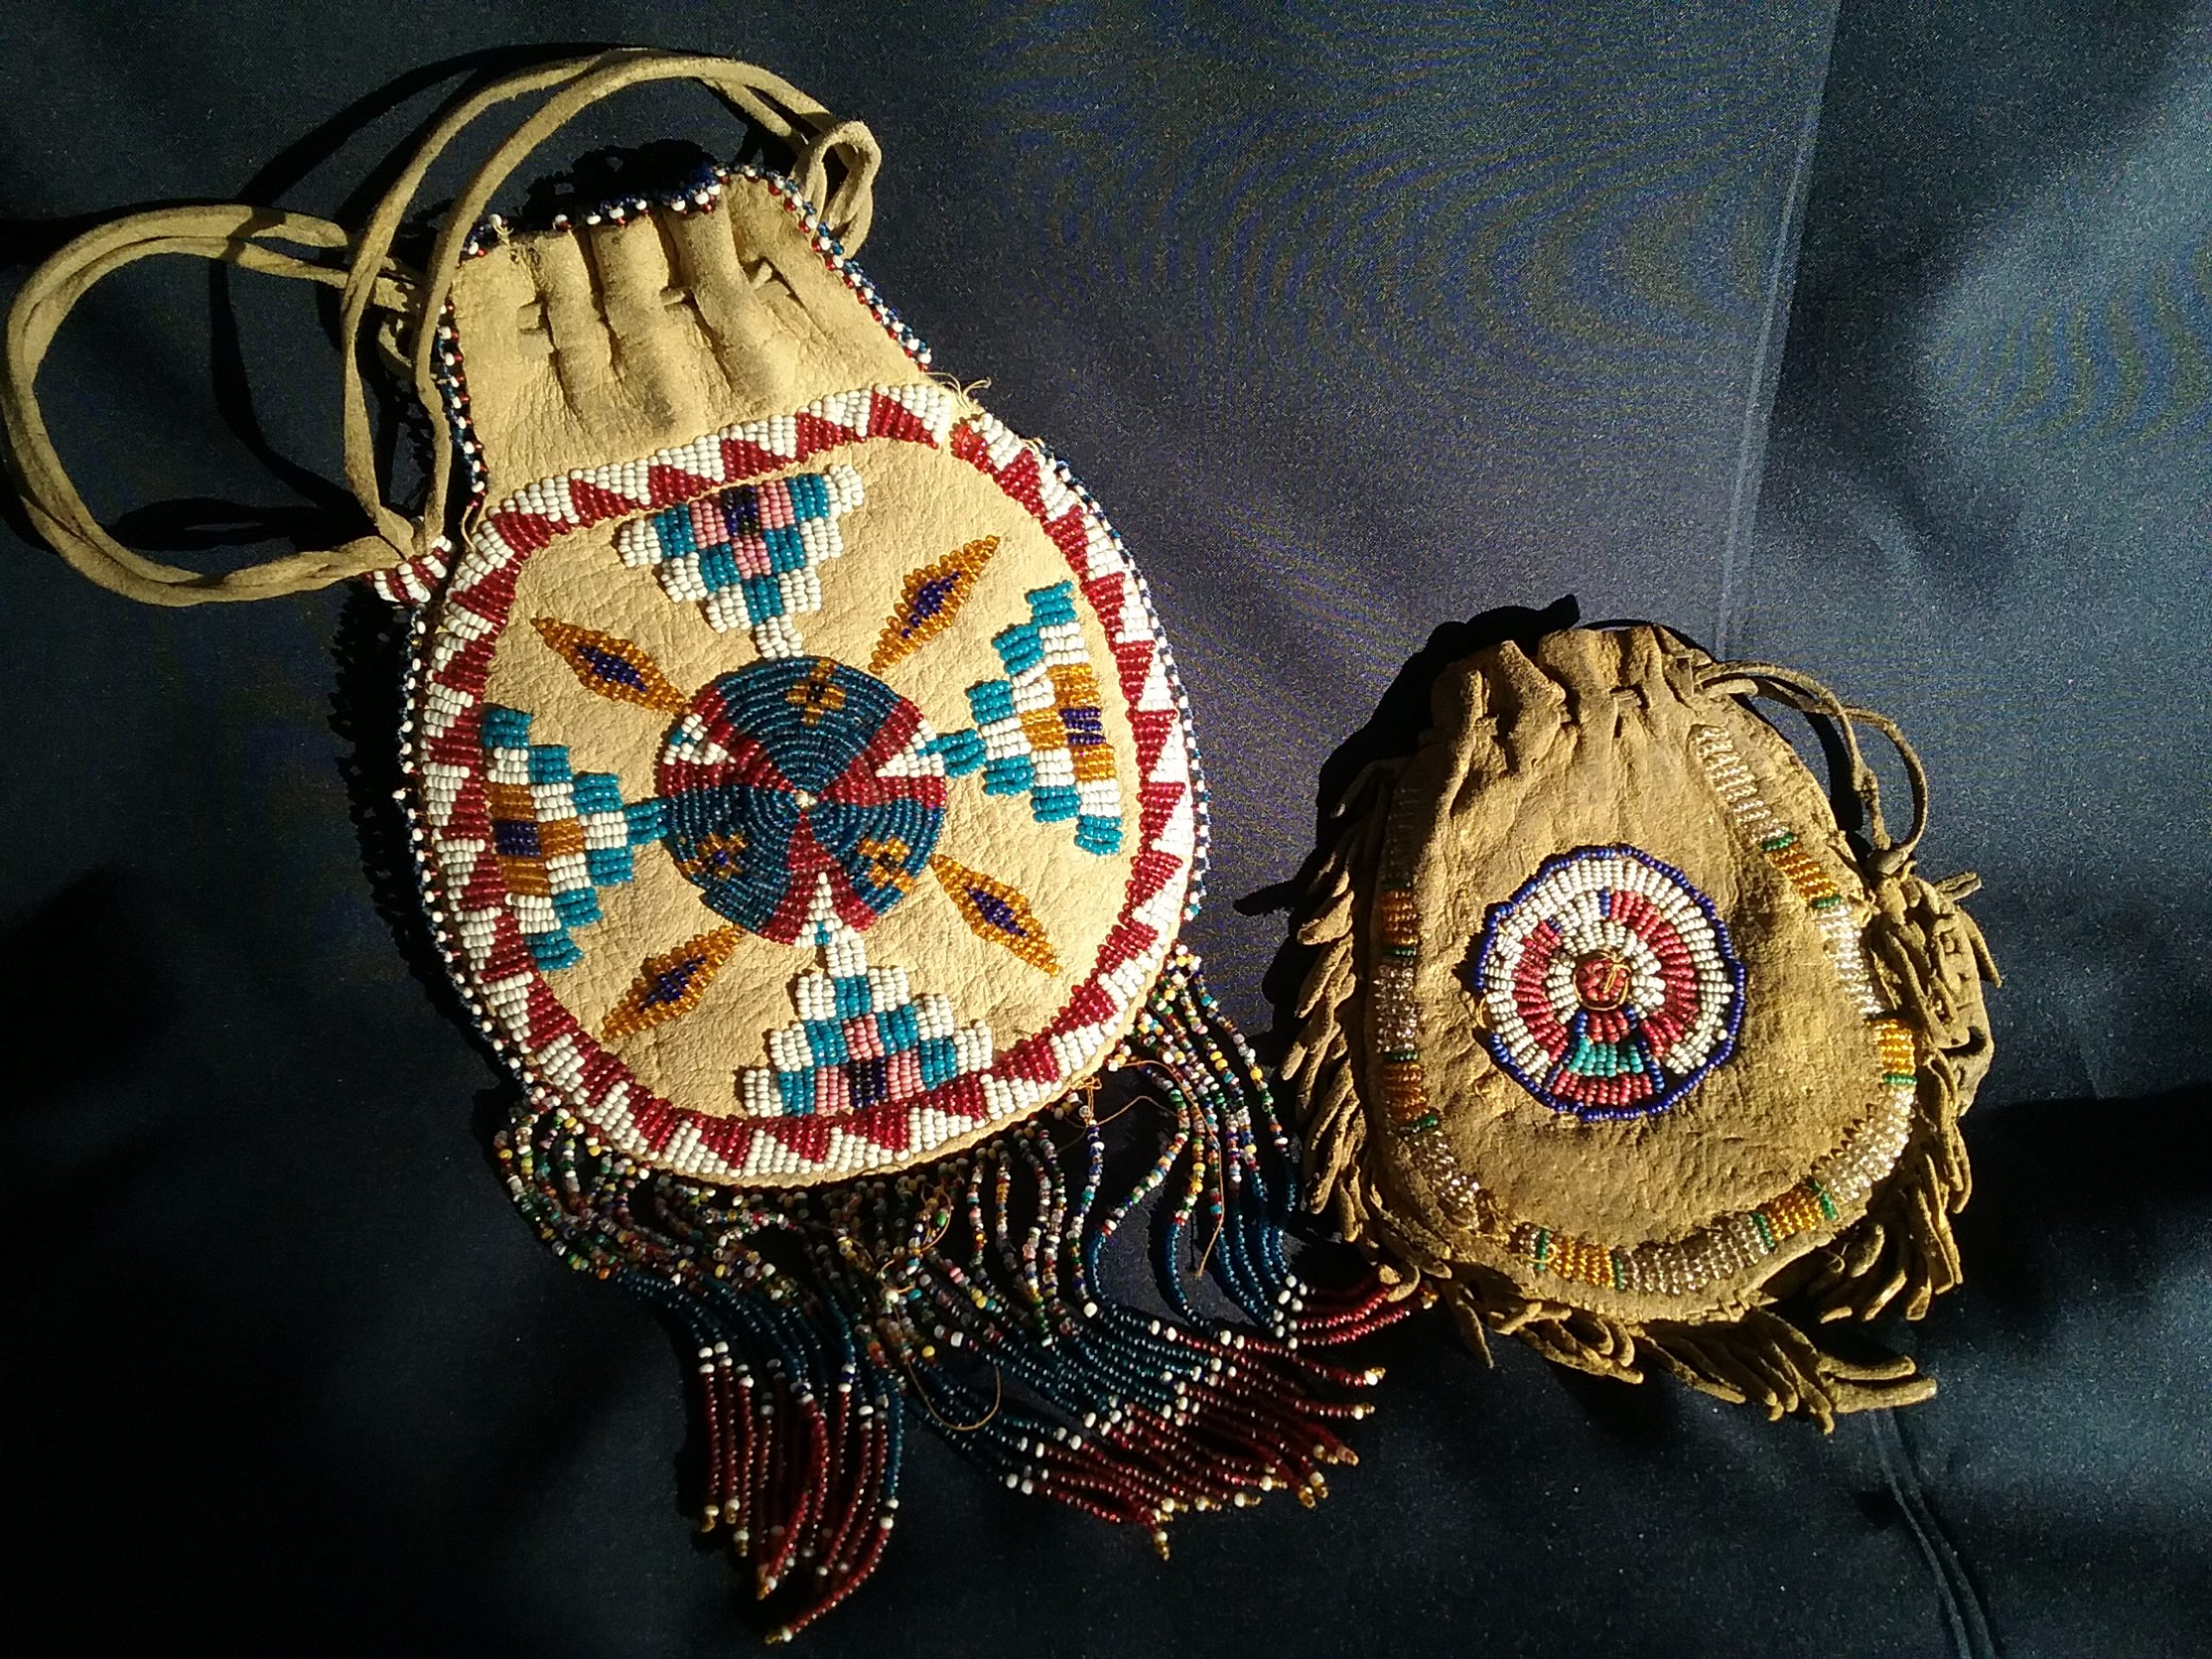 Two Native American leather bags featuring seed bead designs. The bag on the left is from a Native tribe of unknown origin. The bag on the right is from the Blackfoot Nation. MCHS collections, #1984.14.1 and 1990.28.1.